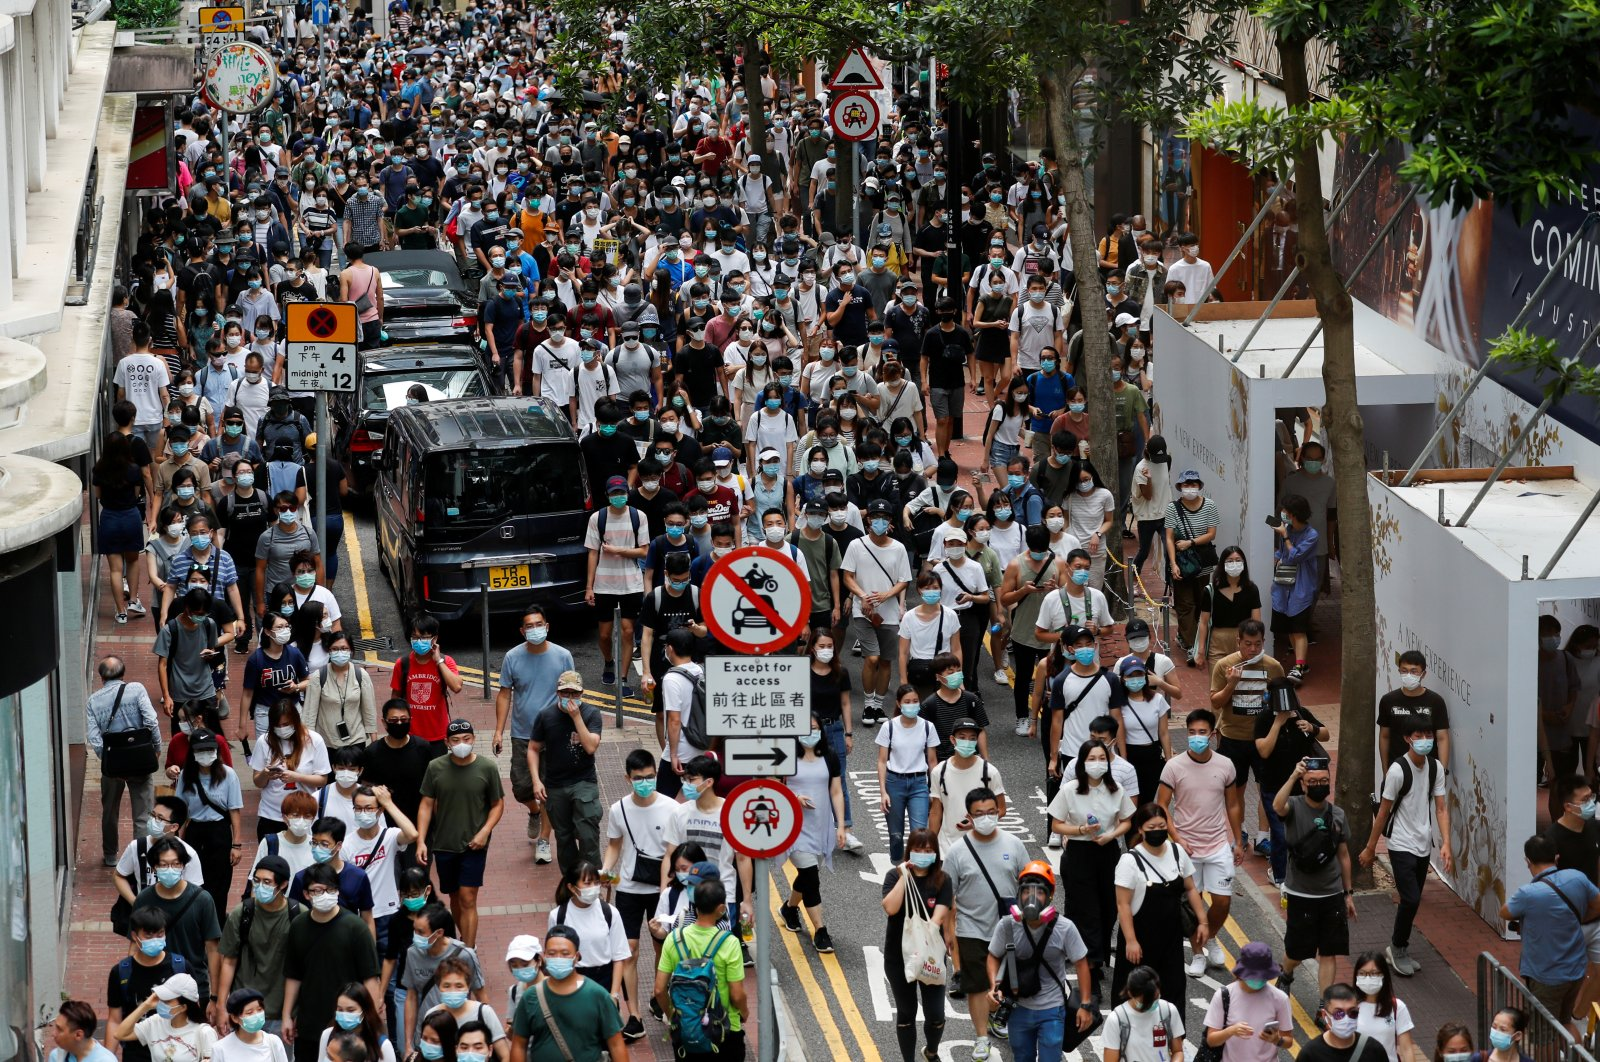 Anti-national security law protesters march at the anniversary of Hong Kong's handover to China from Britain, in Hong Kong, July 1, 2020. (REUTERS Photo)